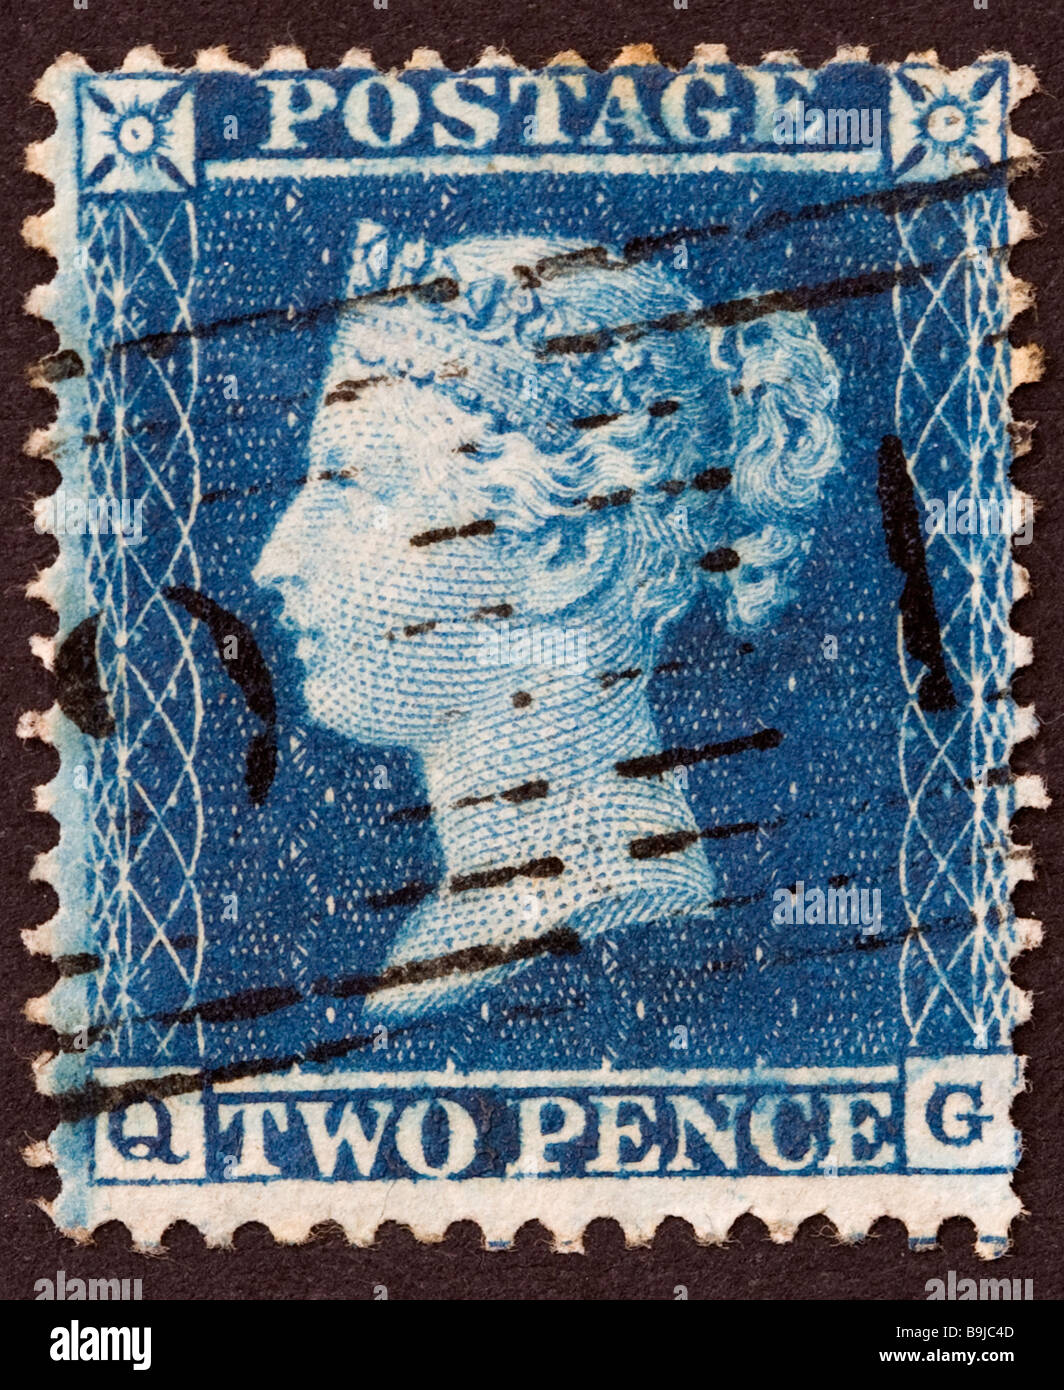 Victorian British postage Stamp, 2d blue 1856-62 Perf 14 used - Stock Image